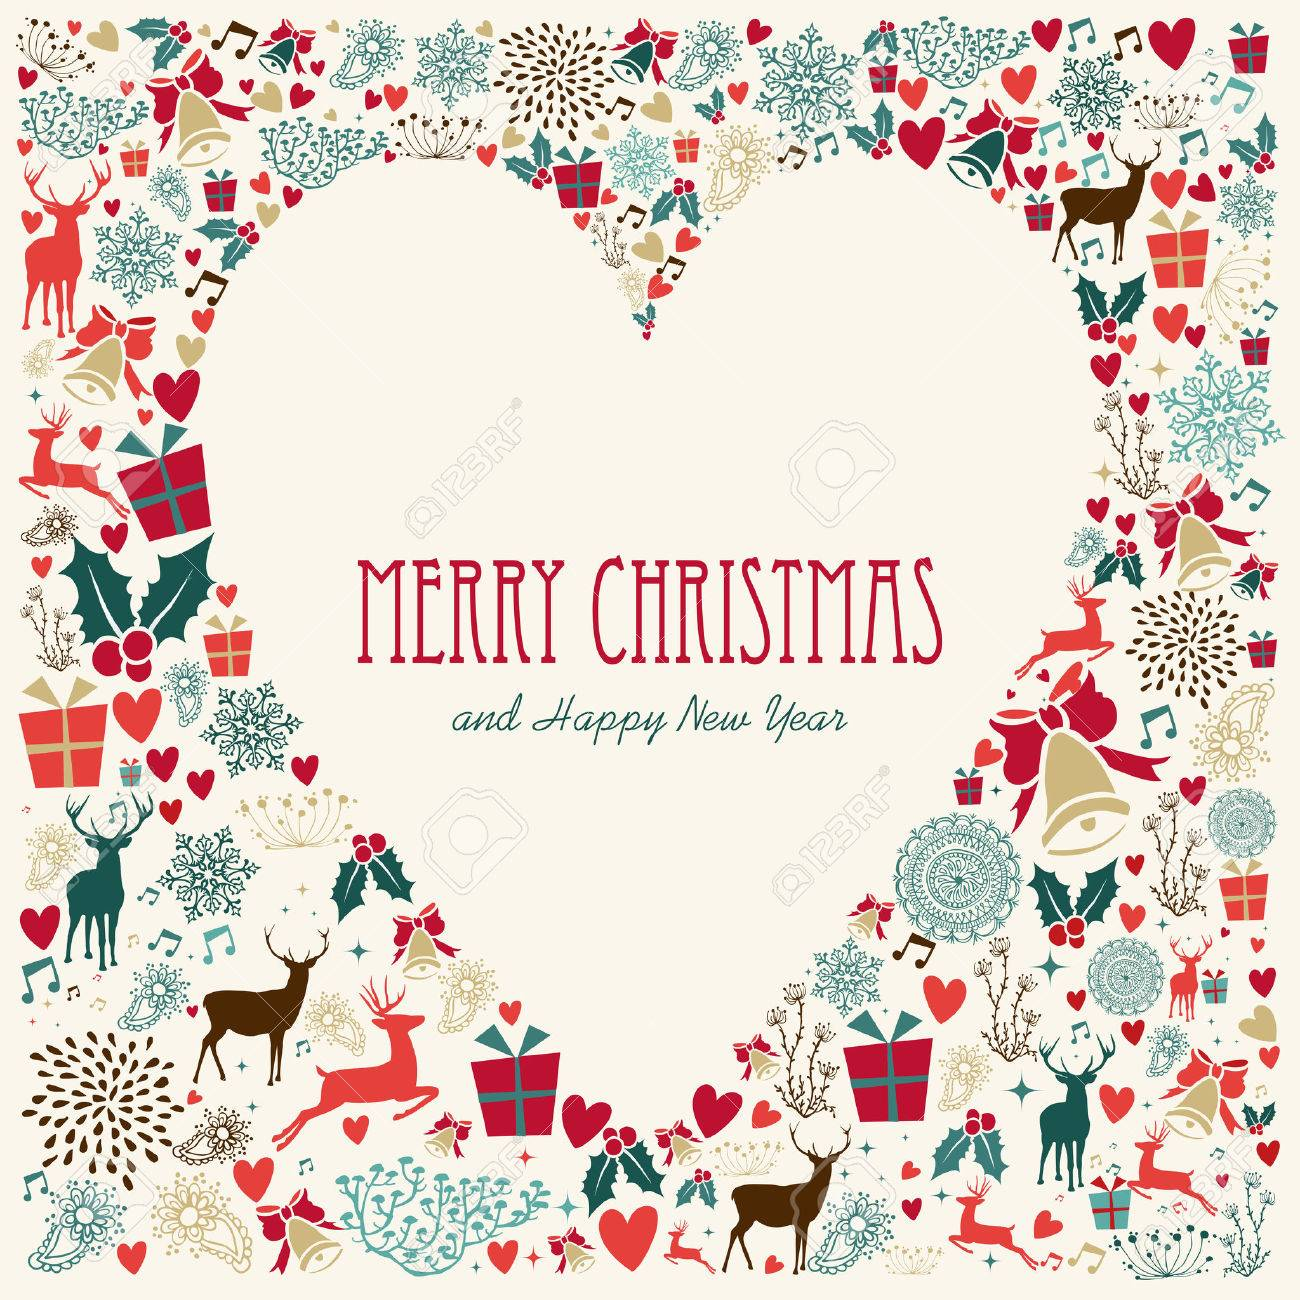 Vintage Christmas Heart love elements background. EPS10 vector file organized in layers for easy editing. Stock Vector - 24098586